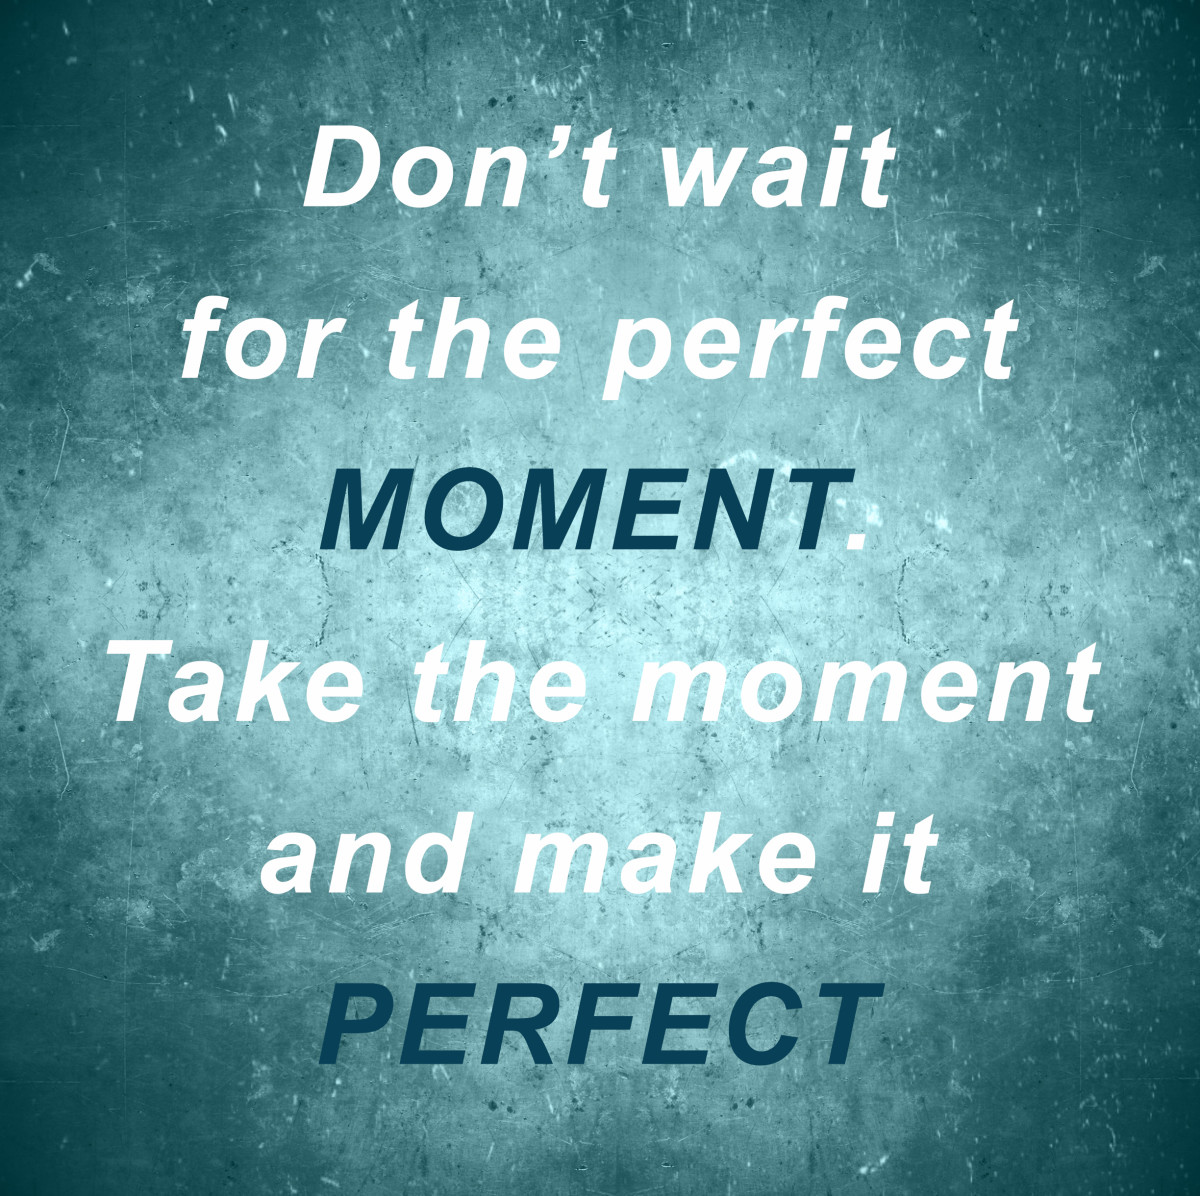 The perfect moment to change is now.